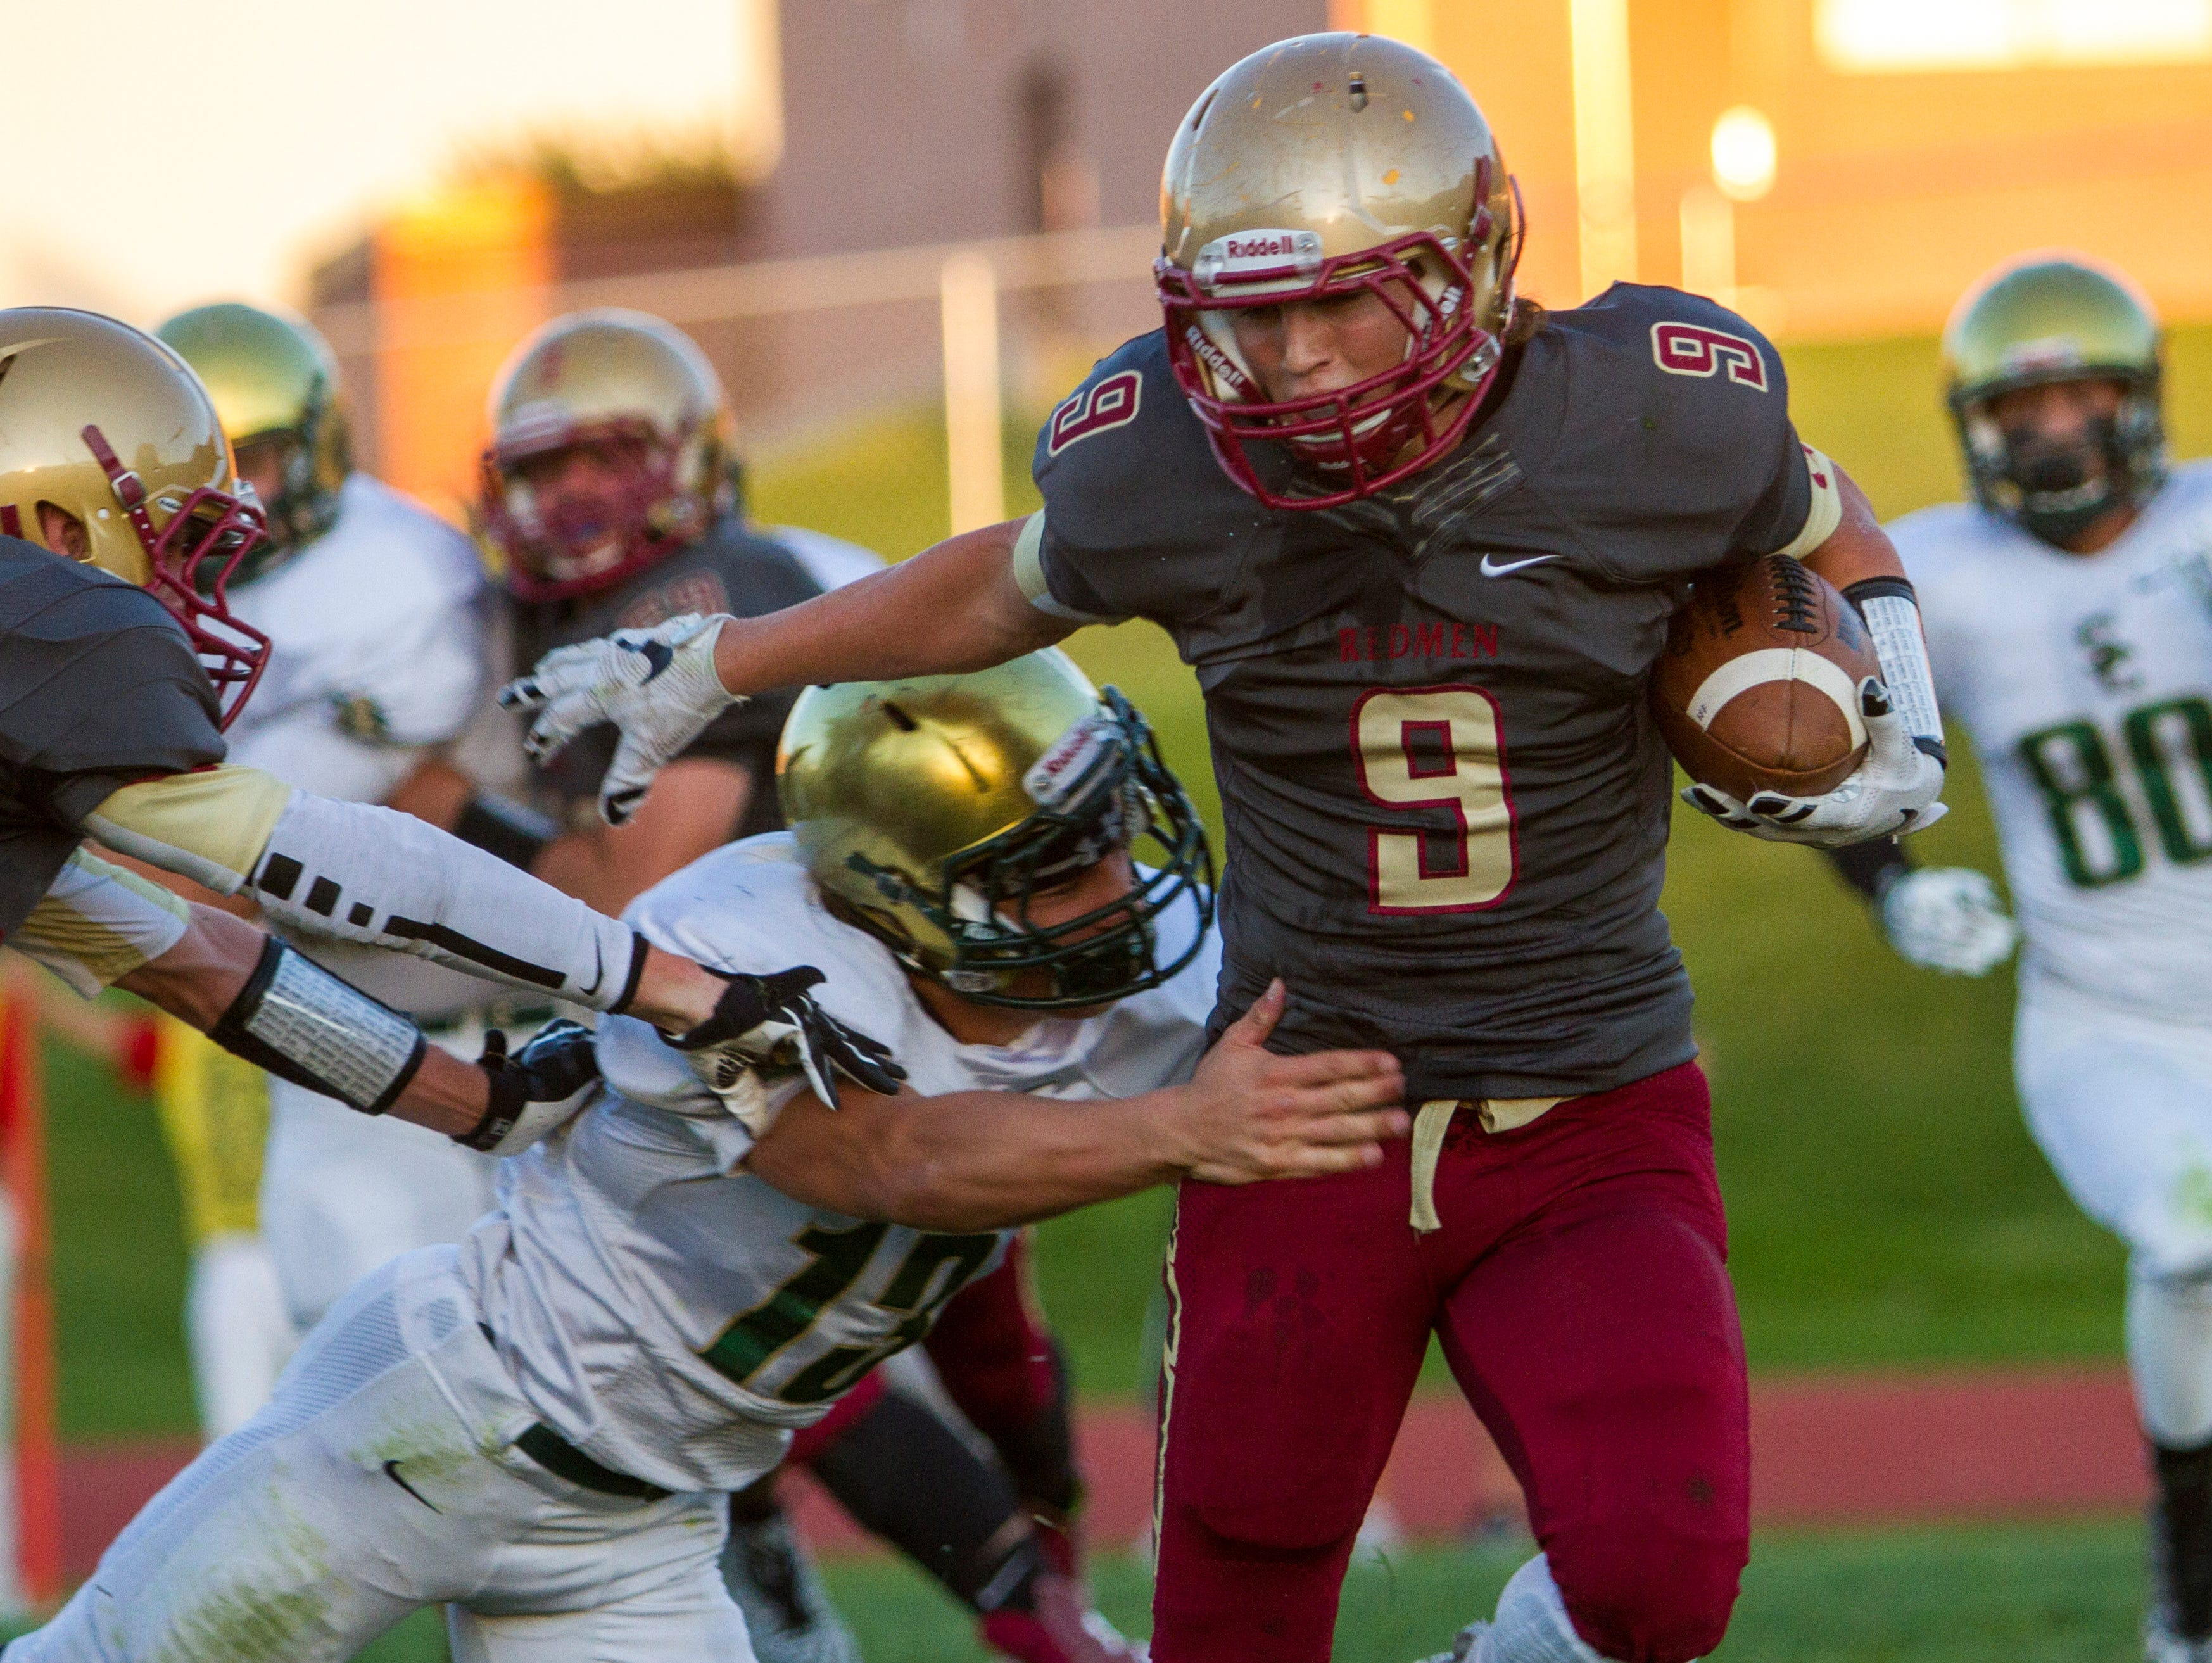 Cedar's Drake Lewis (#9) breaks a tackle on his way to a touchdown against Snow Canyon, Friday, Sept. 25, 2015.